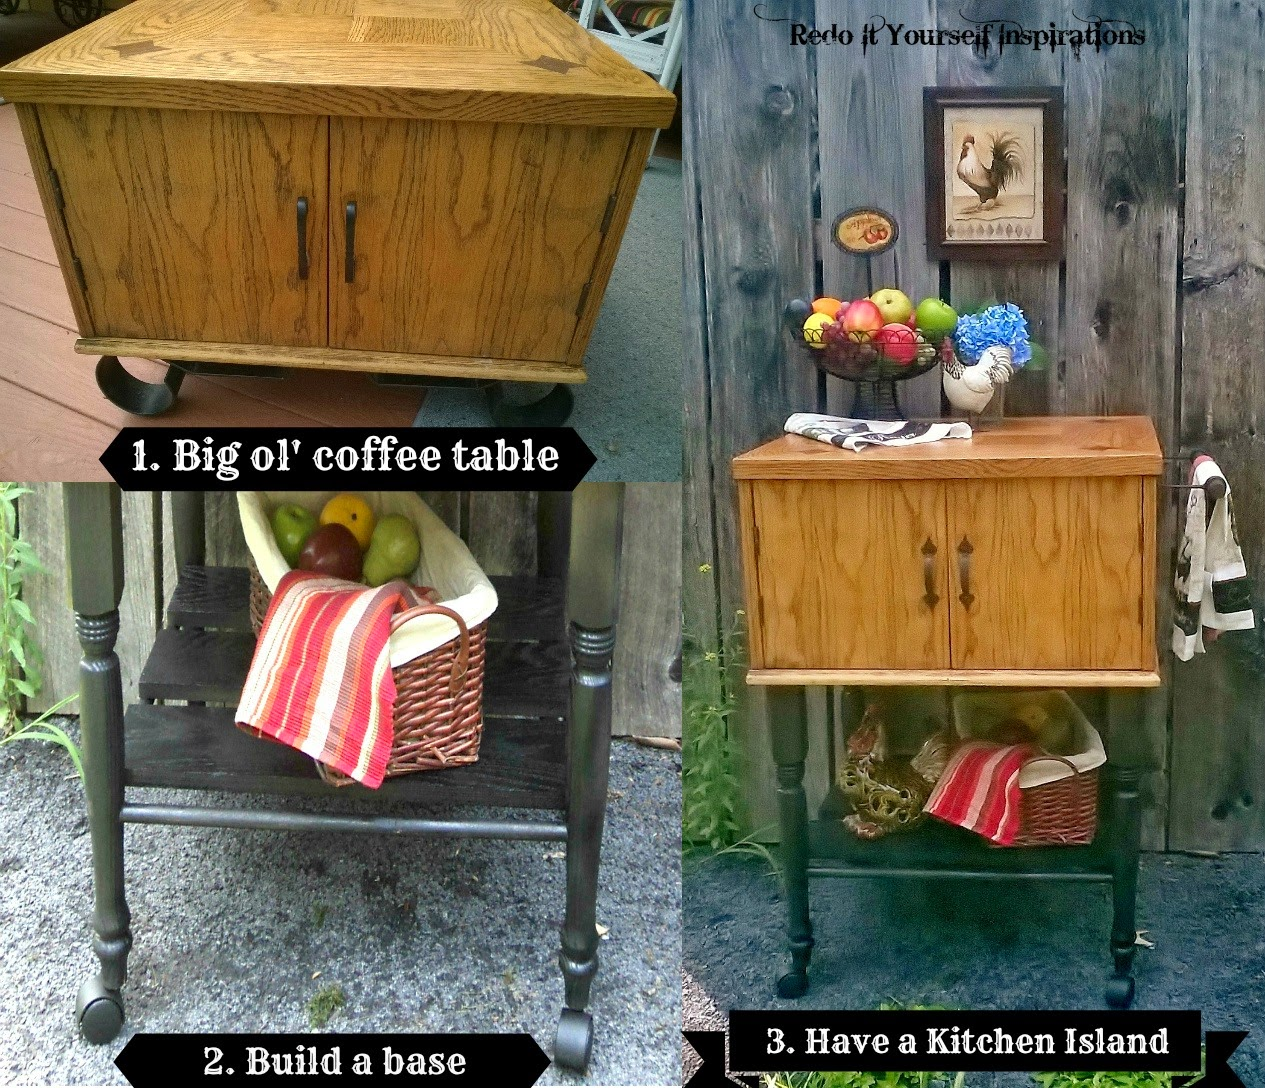 Kitchen Island 2014 country kitchen island | redo it yourself inspirations : country